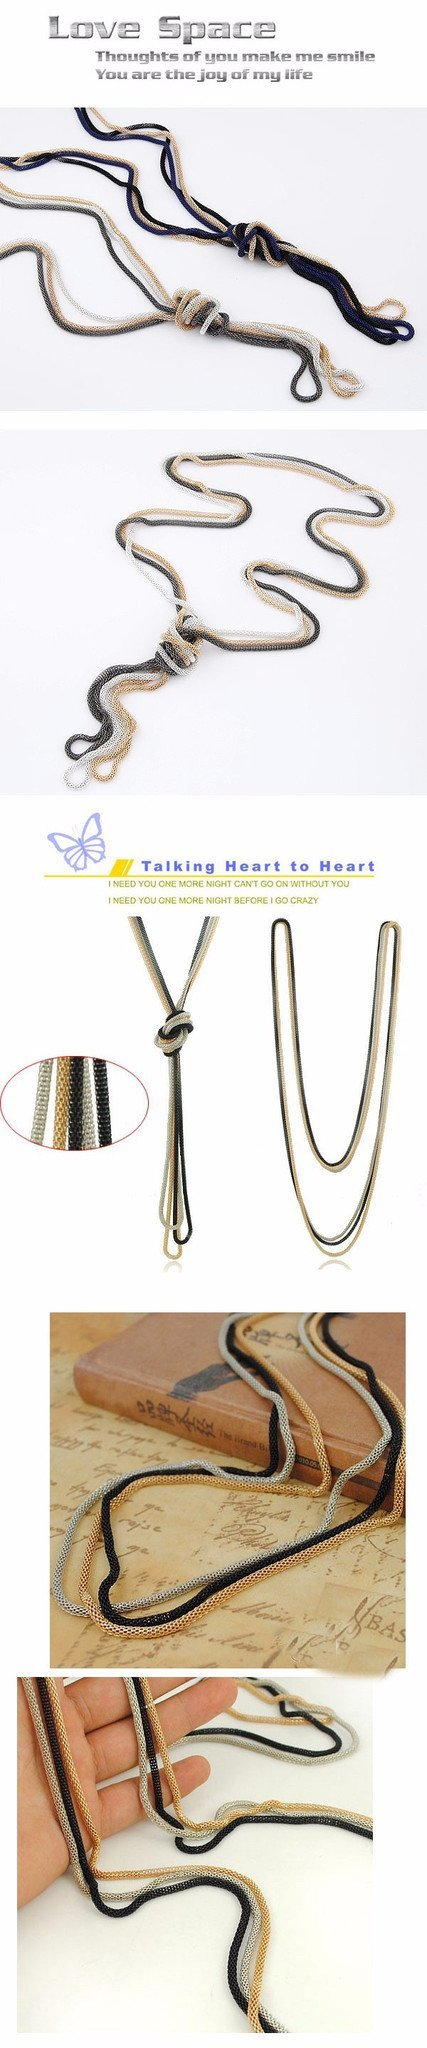 Necklaces - Metal Braid Twist Long Chain Necklace